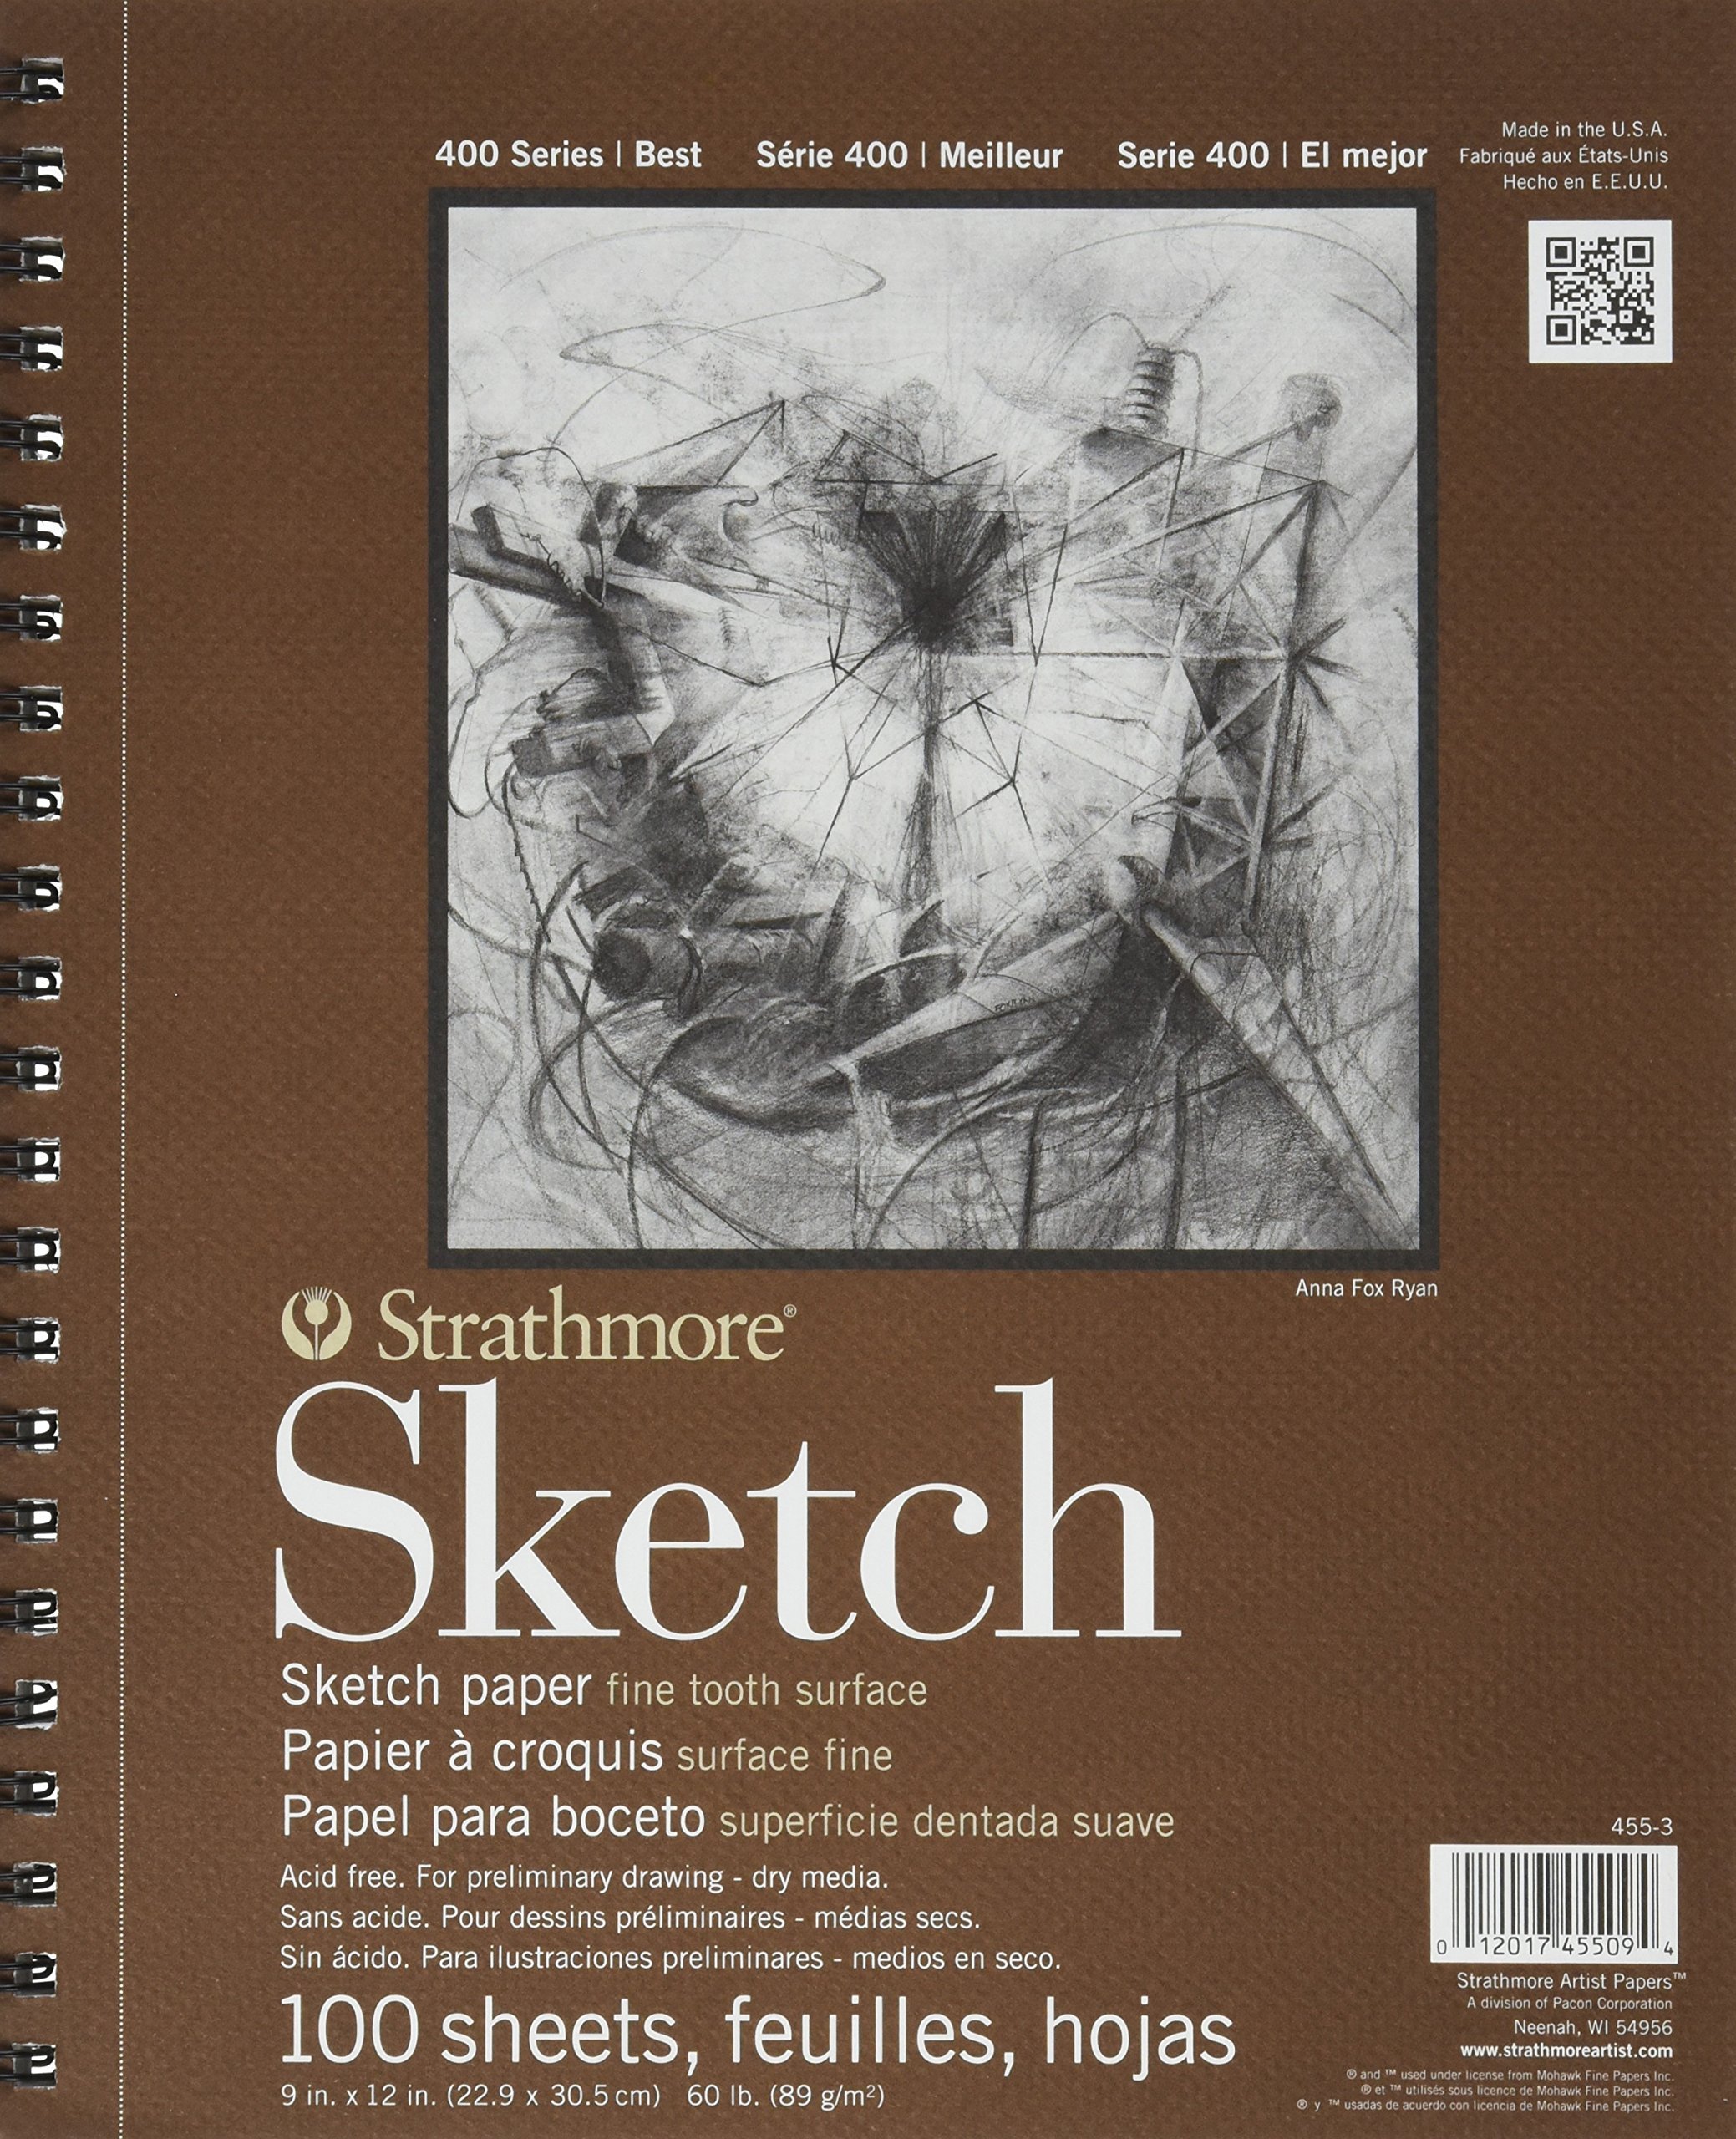 Strathmore SM455-3 455-3 Drawing & Sketch Paper 6 Pack White